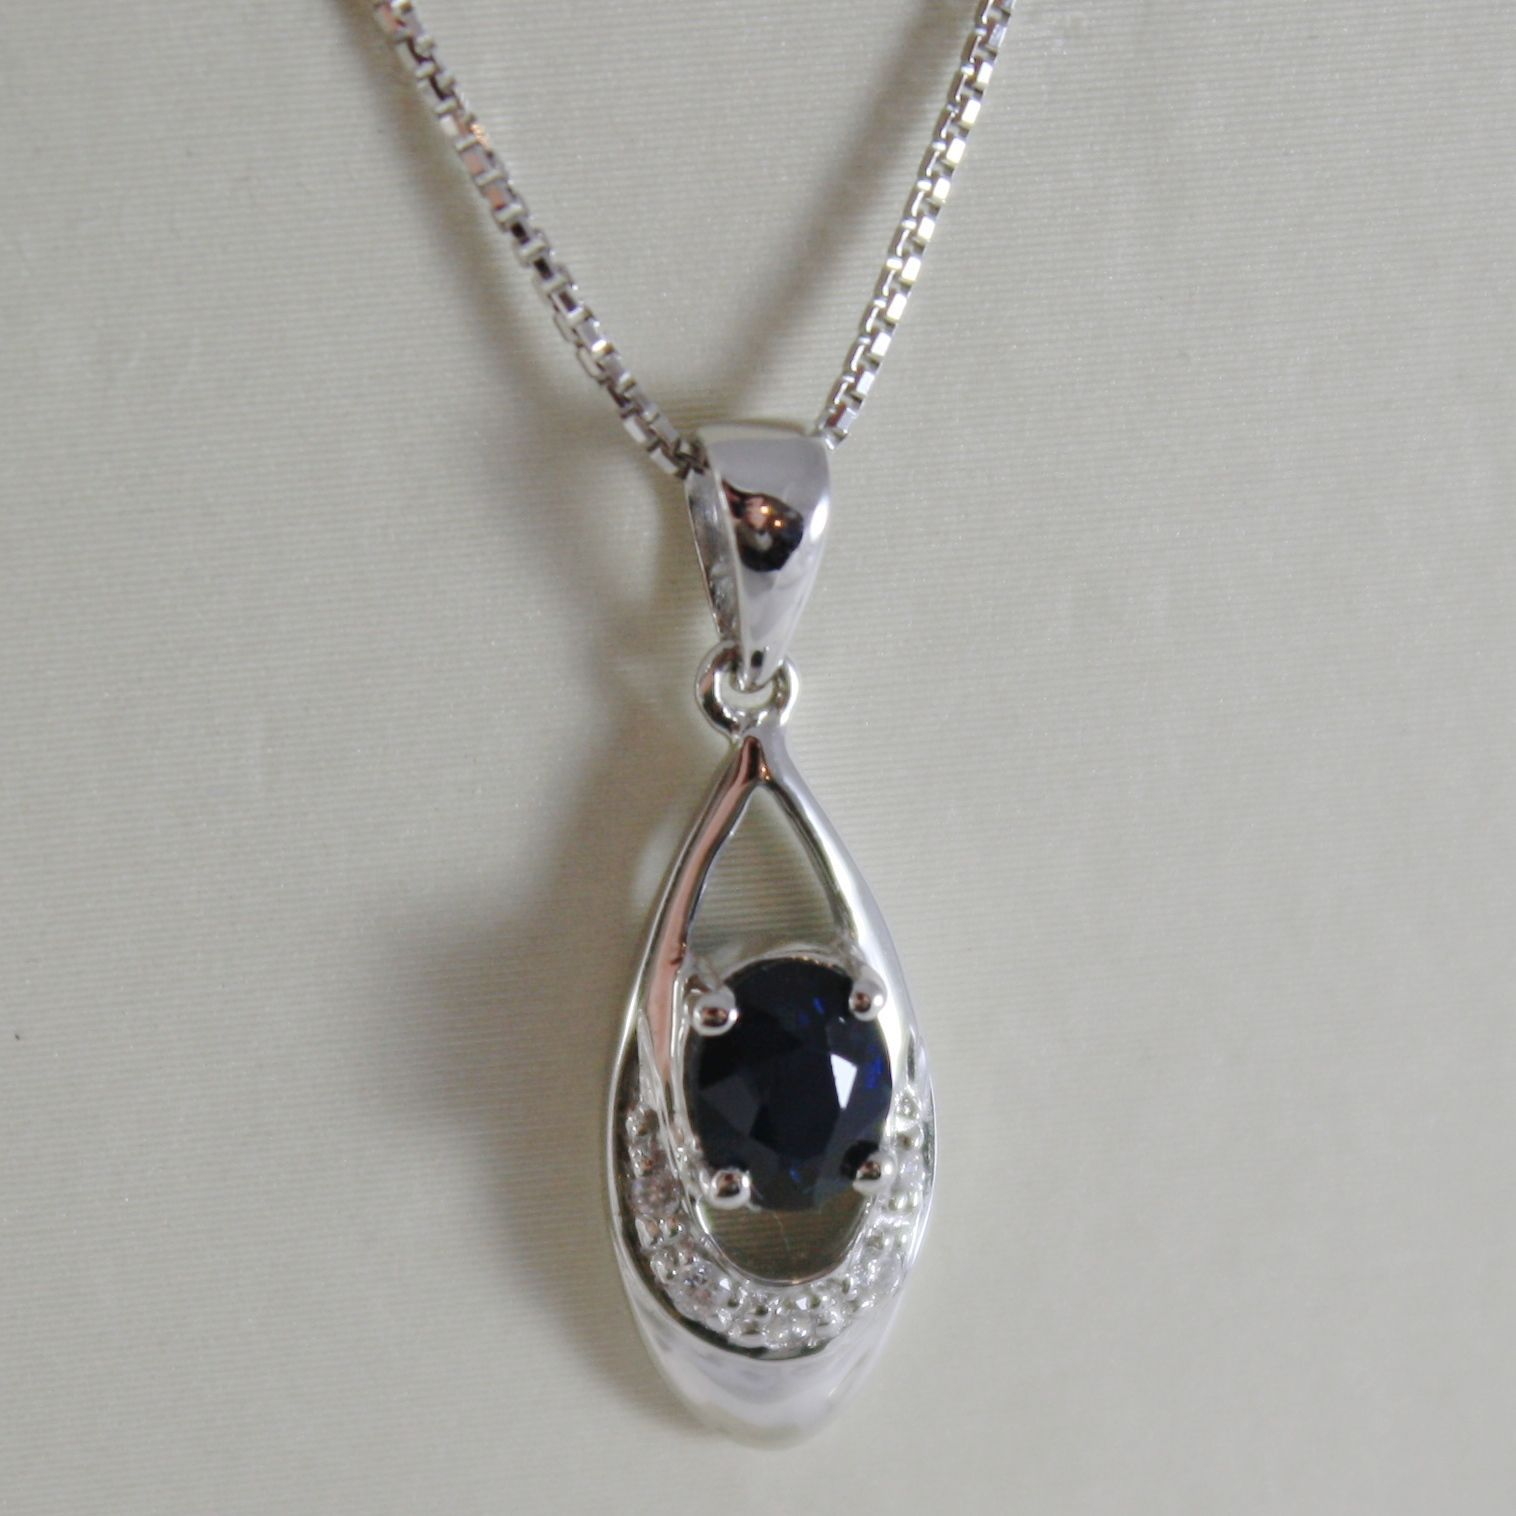 18K WHITE GOLD OVAL DROP PENDANT NECKLACE DIAMOND BLUE SAPPHIRE MADE IN ITALY